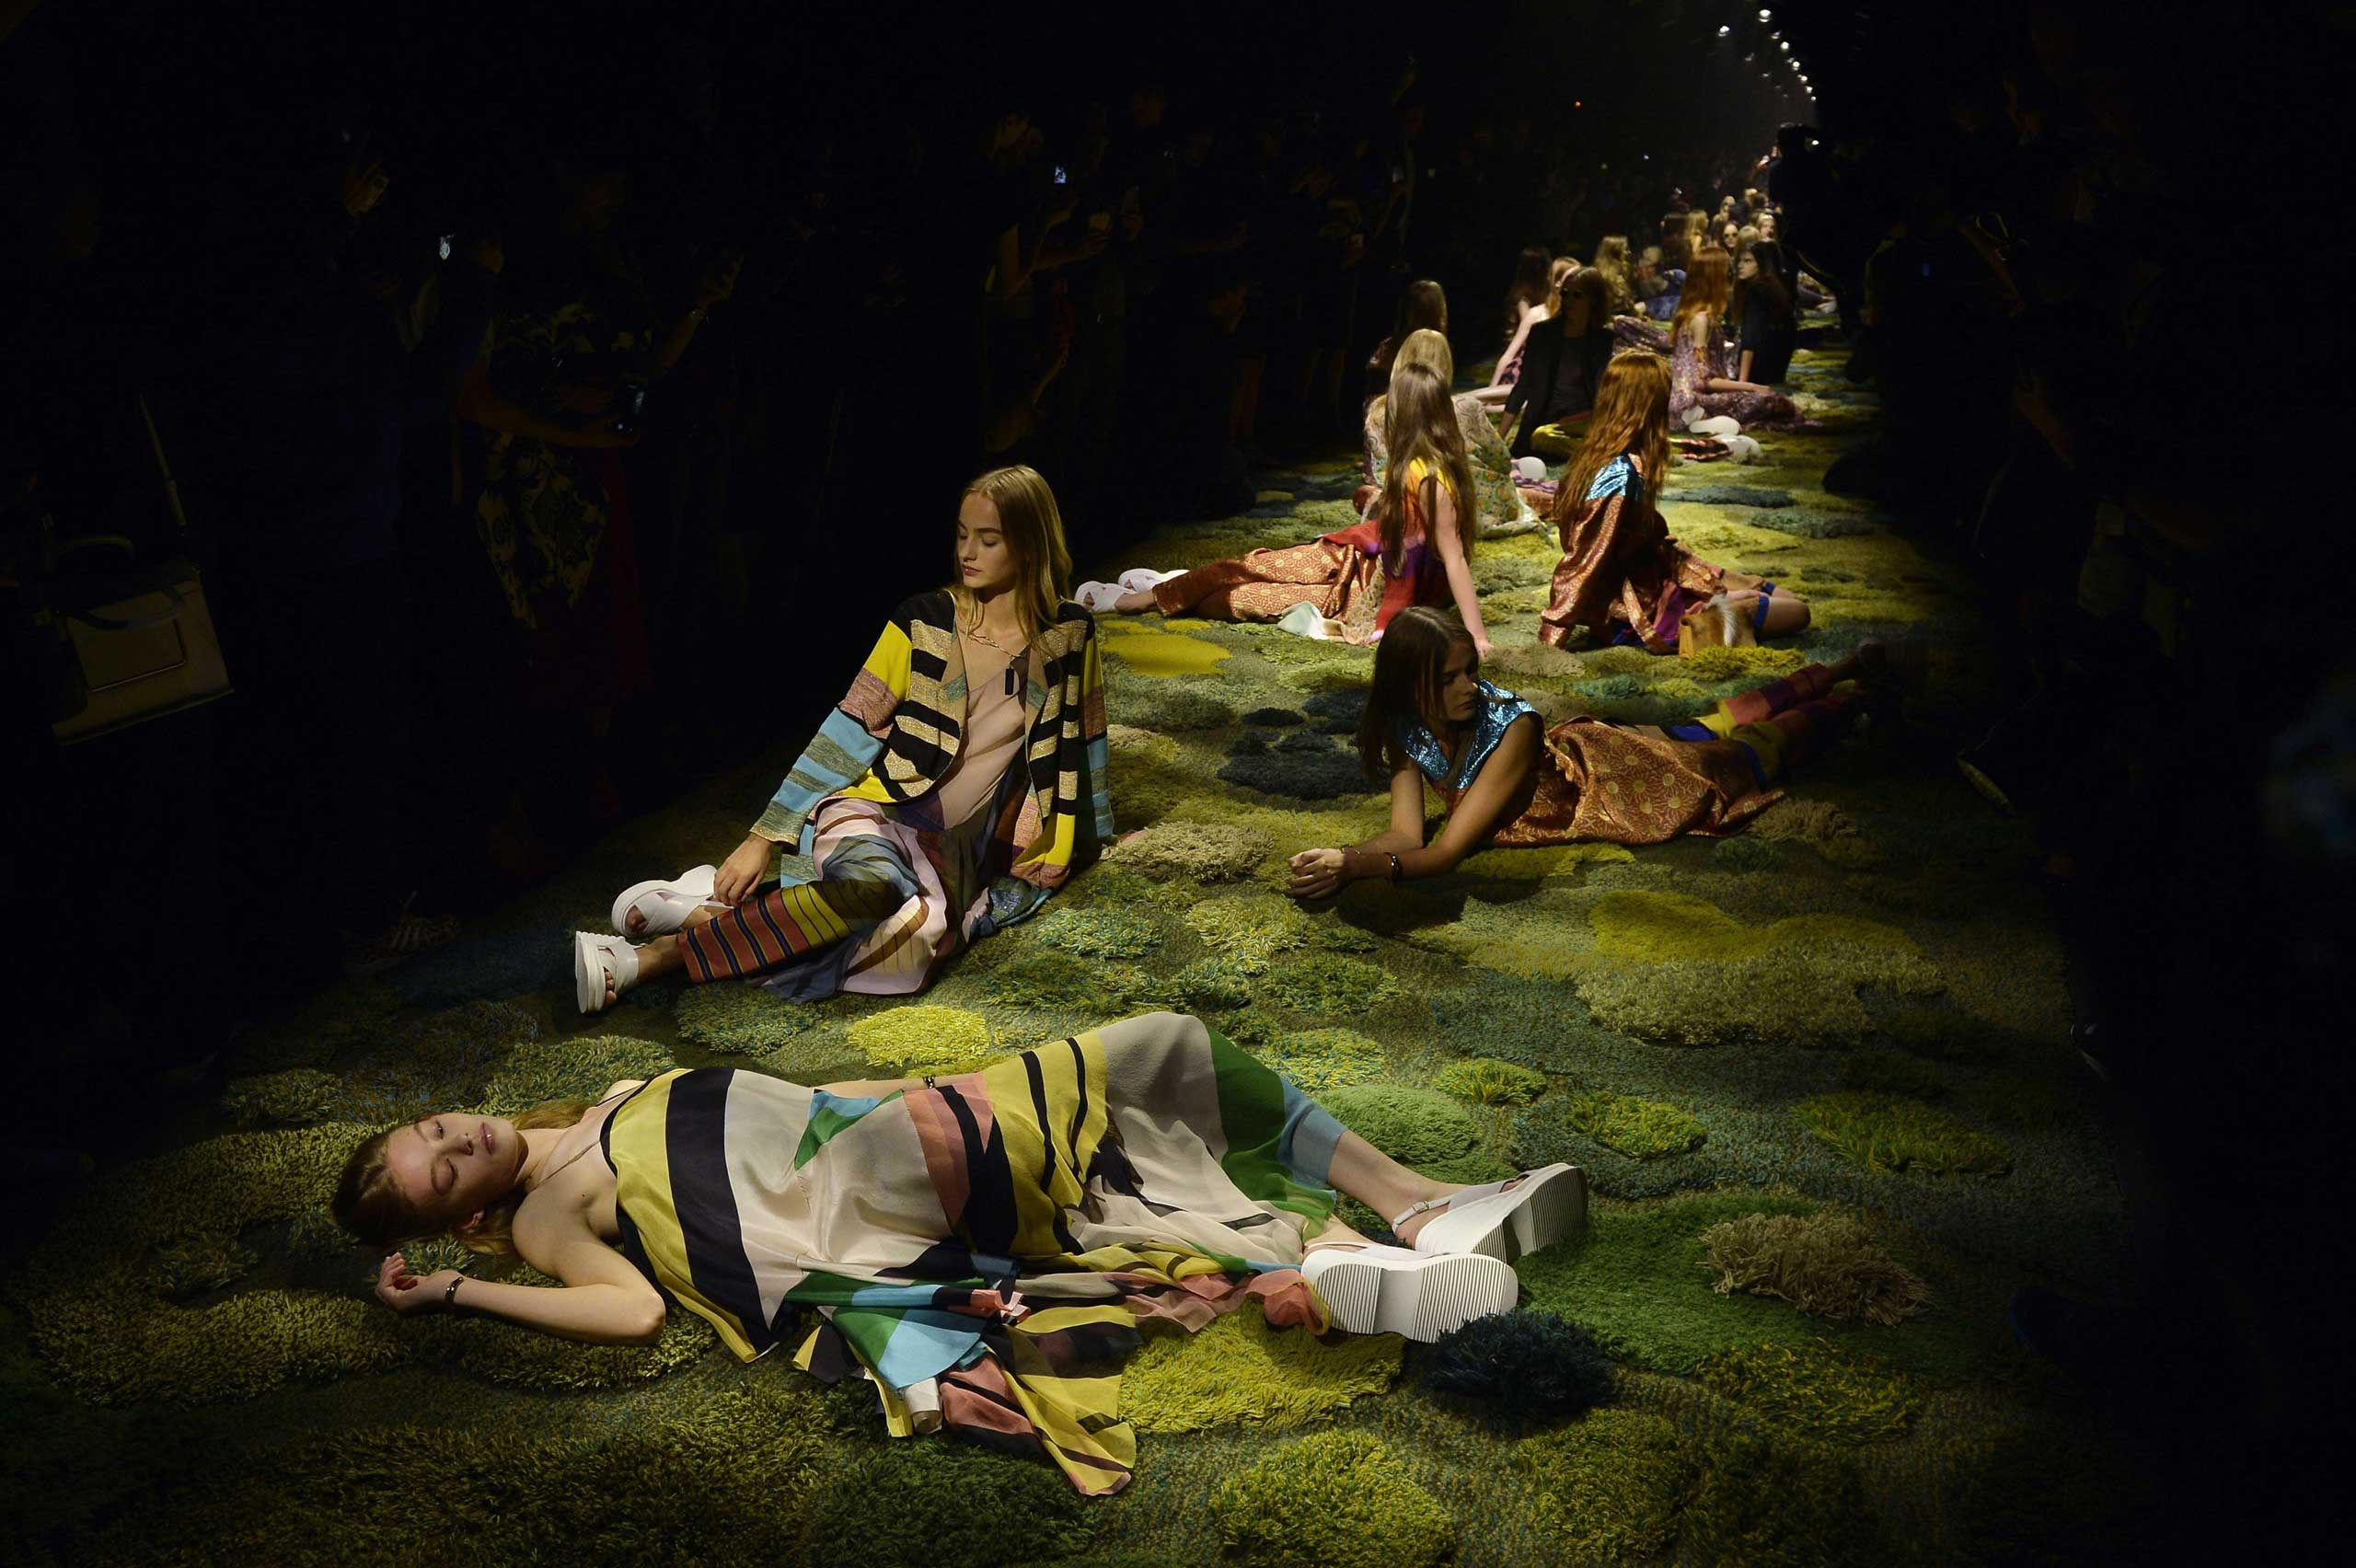 Sept. 24, 2014. Models present creations by Dries Van Noten during the 2015 Spring/Summer ready-to-wear collection fashion show in Paris.